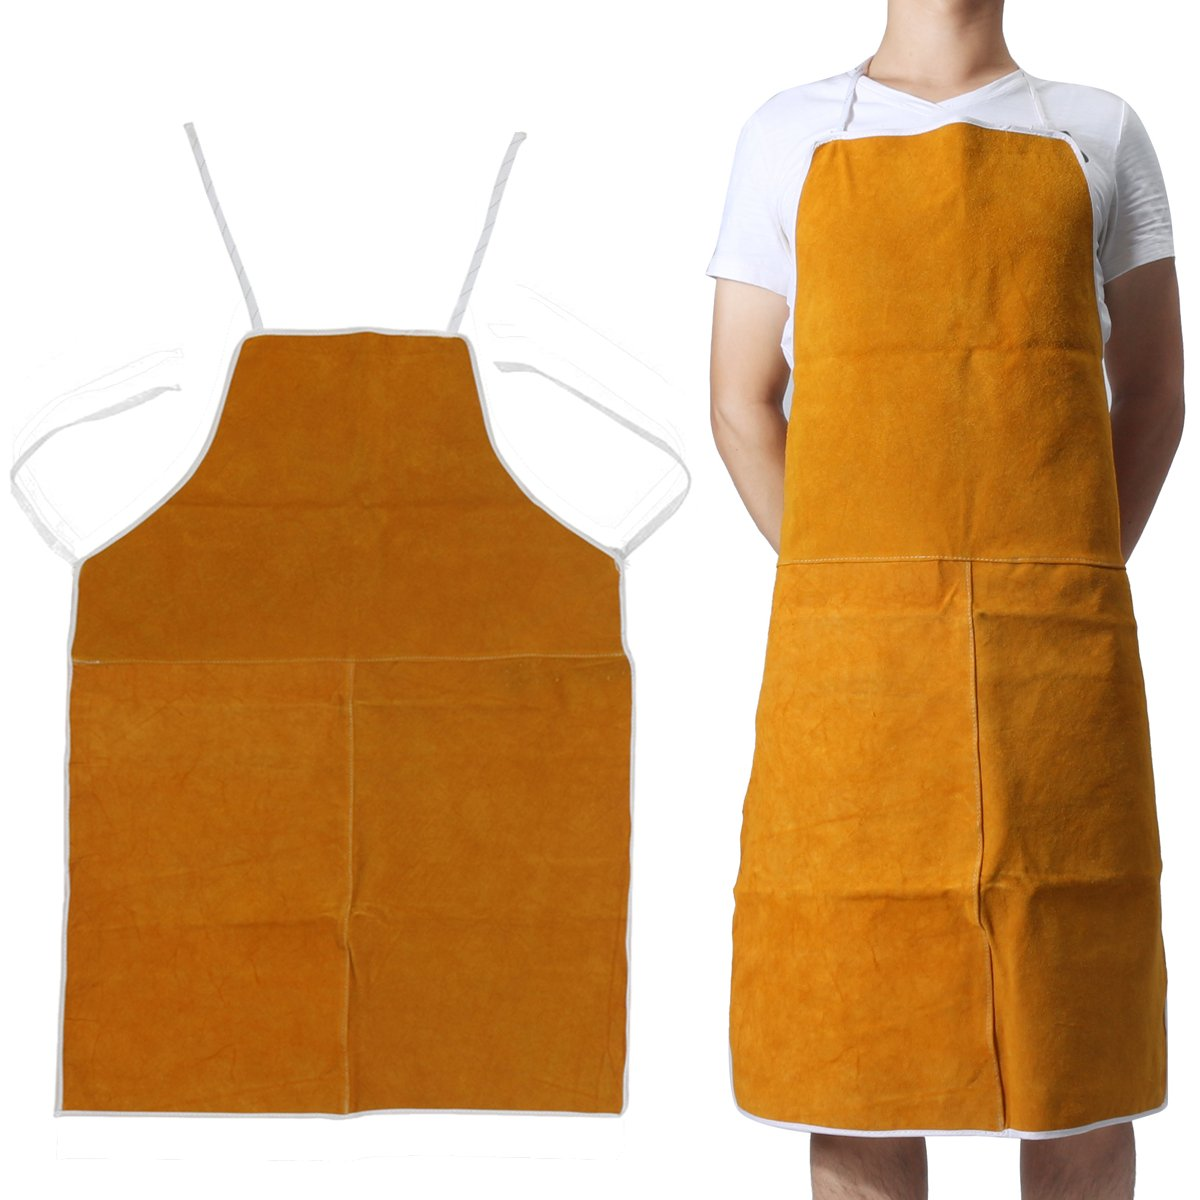 OlogyMart Cow Leather Aprons Welding Heat Insulation Protection Welders Blacksmith 93x64cm